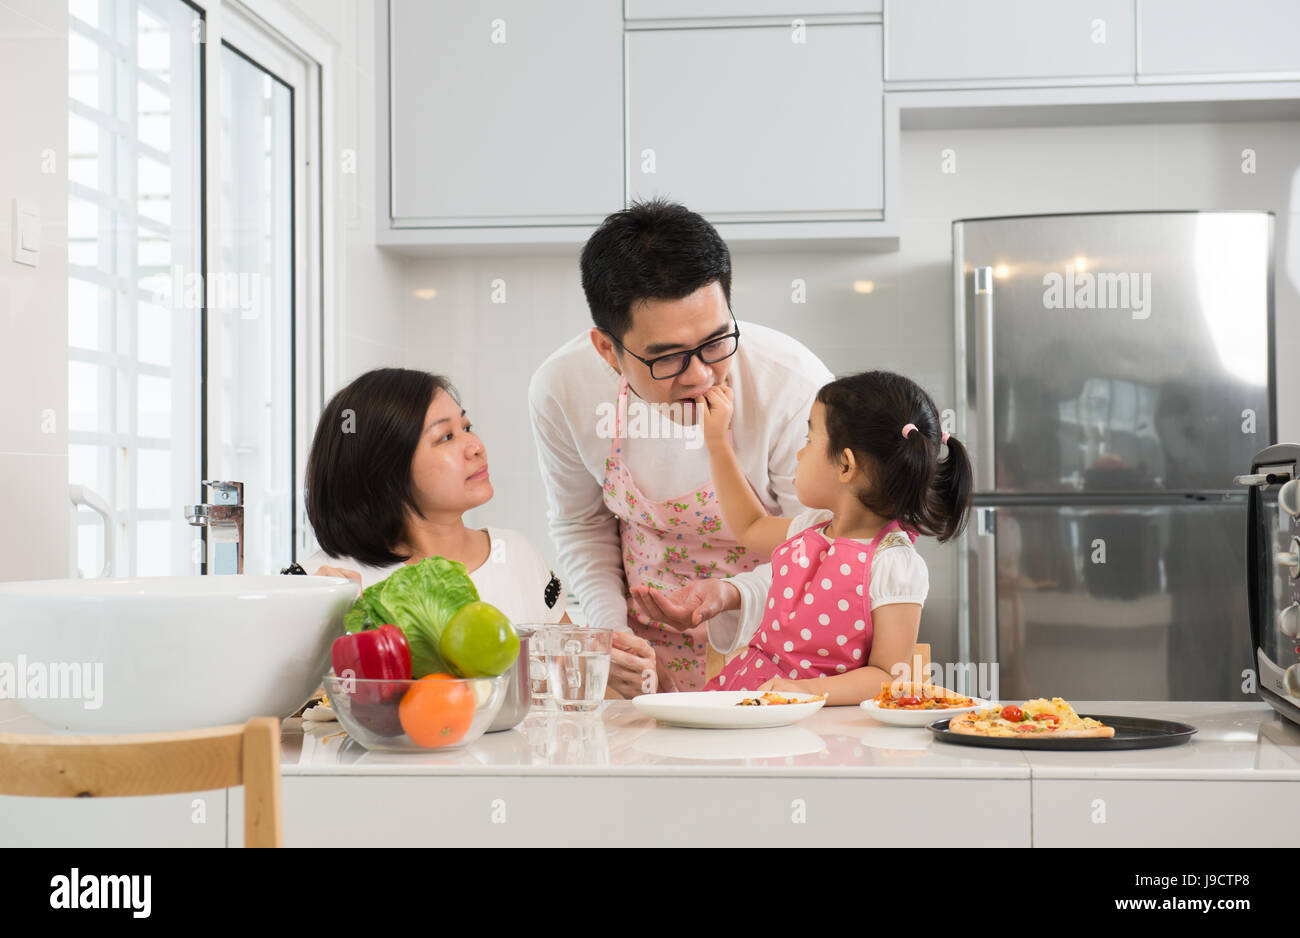 Family cooking kitchen - Stock Photo Asian Family Cooking At Kitchen